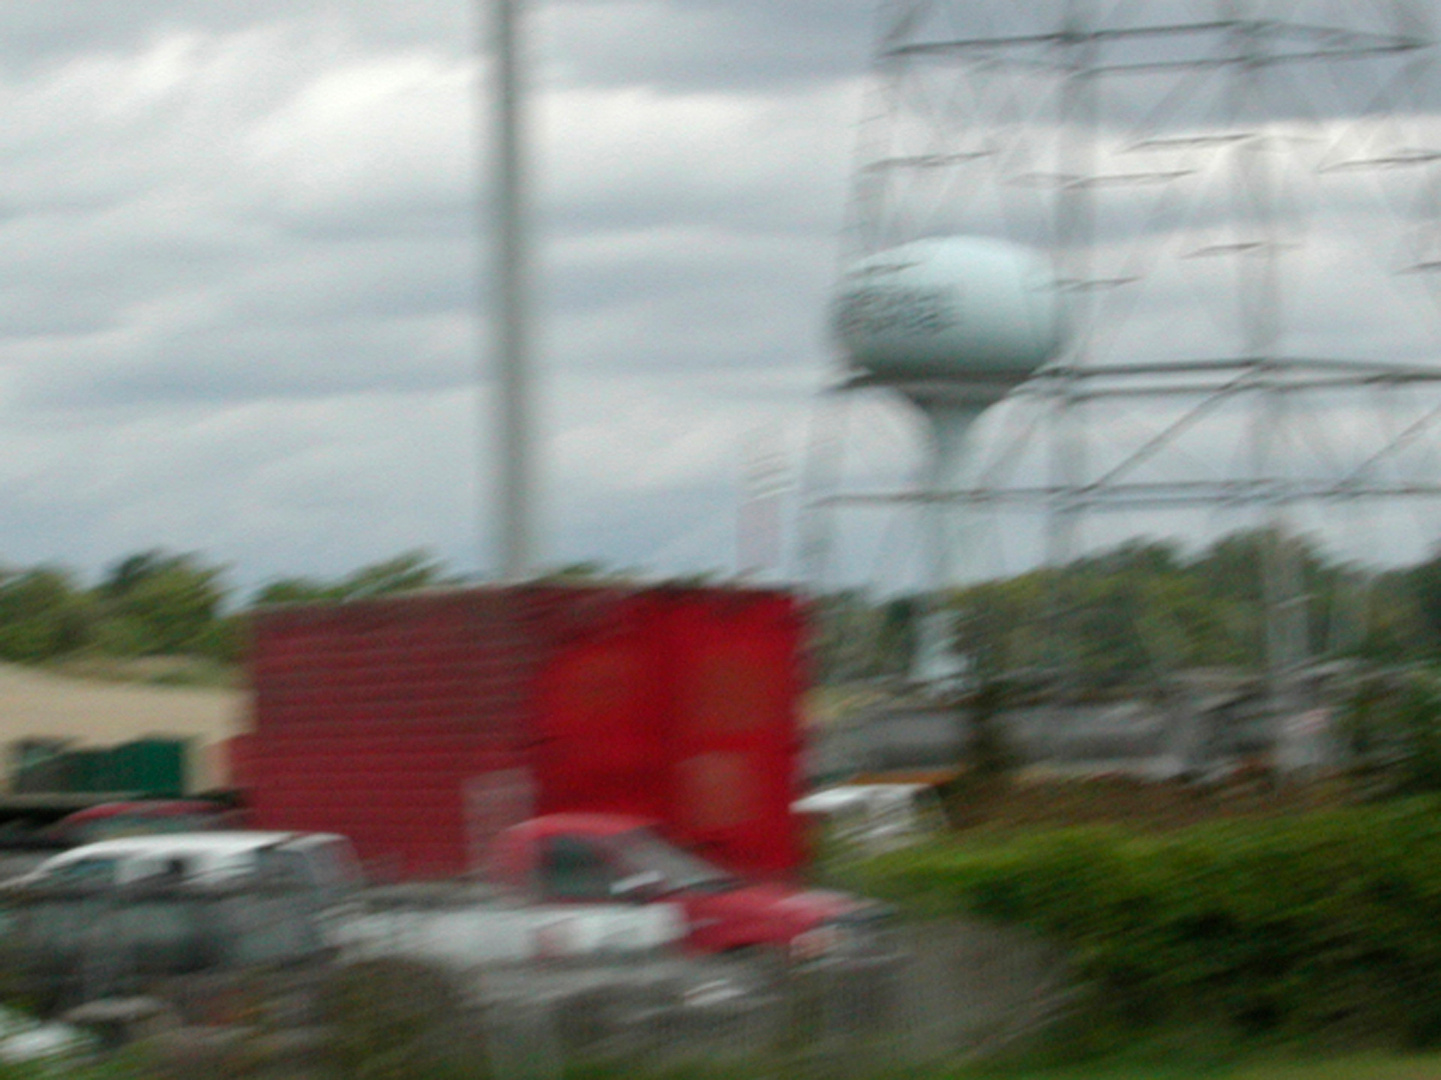 Tower and Red Truck